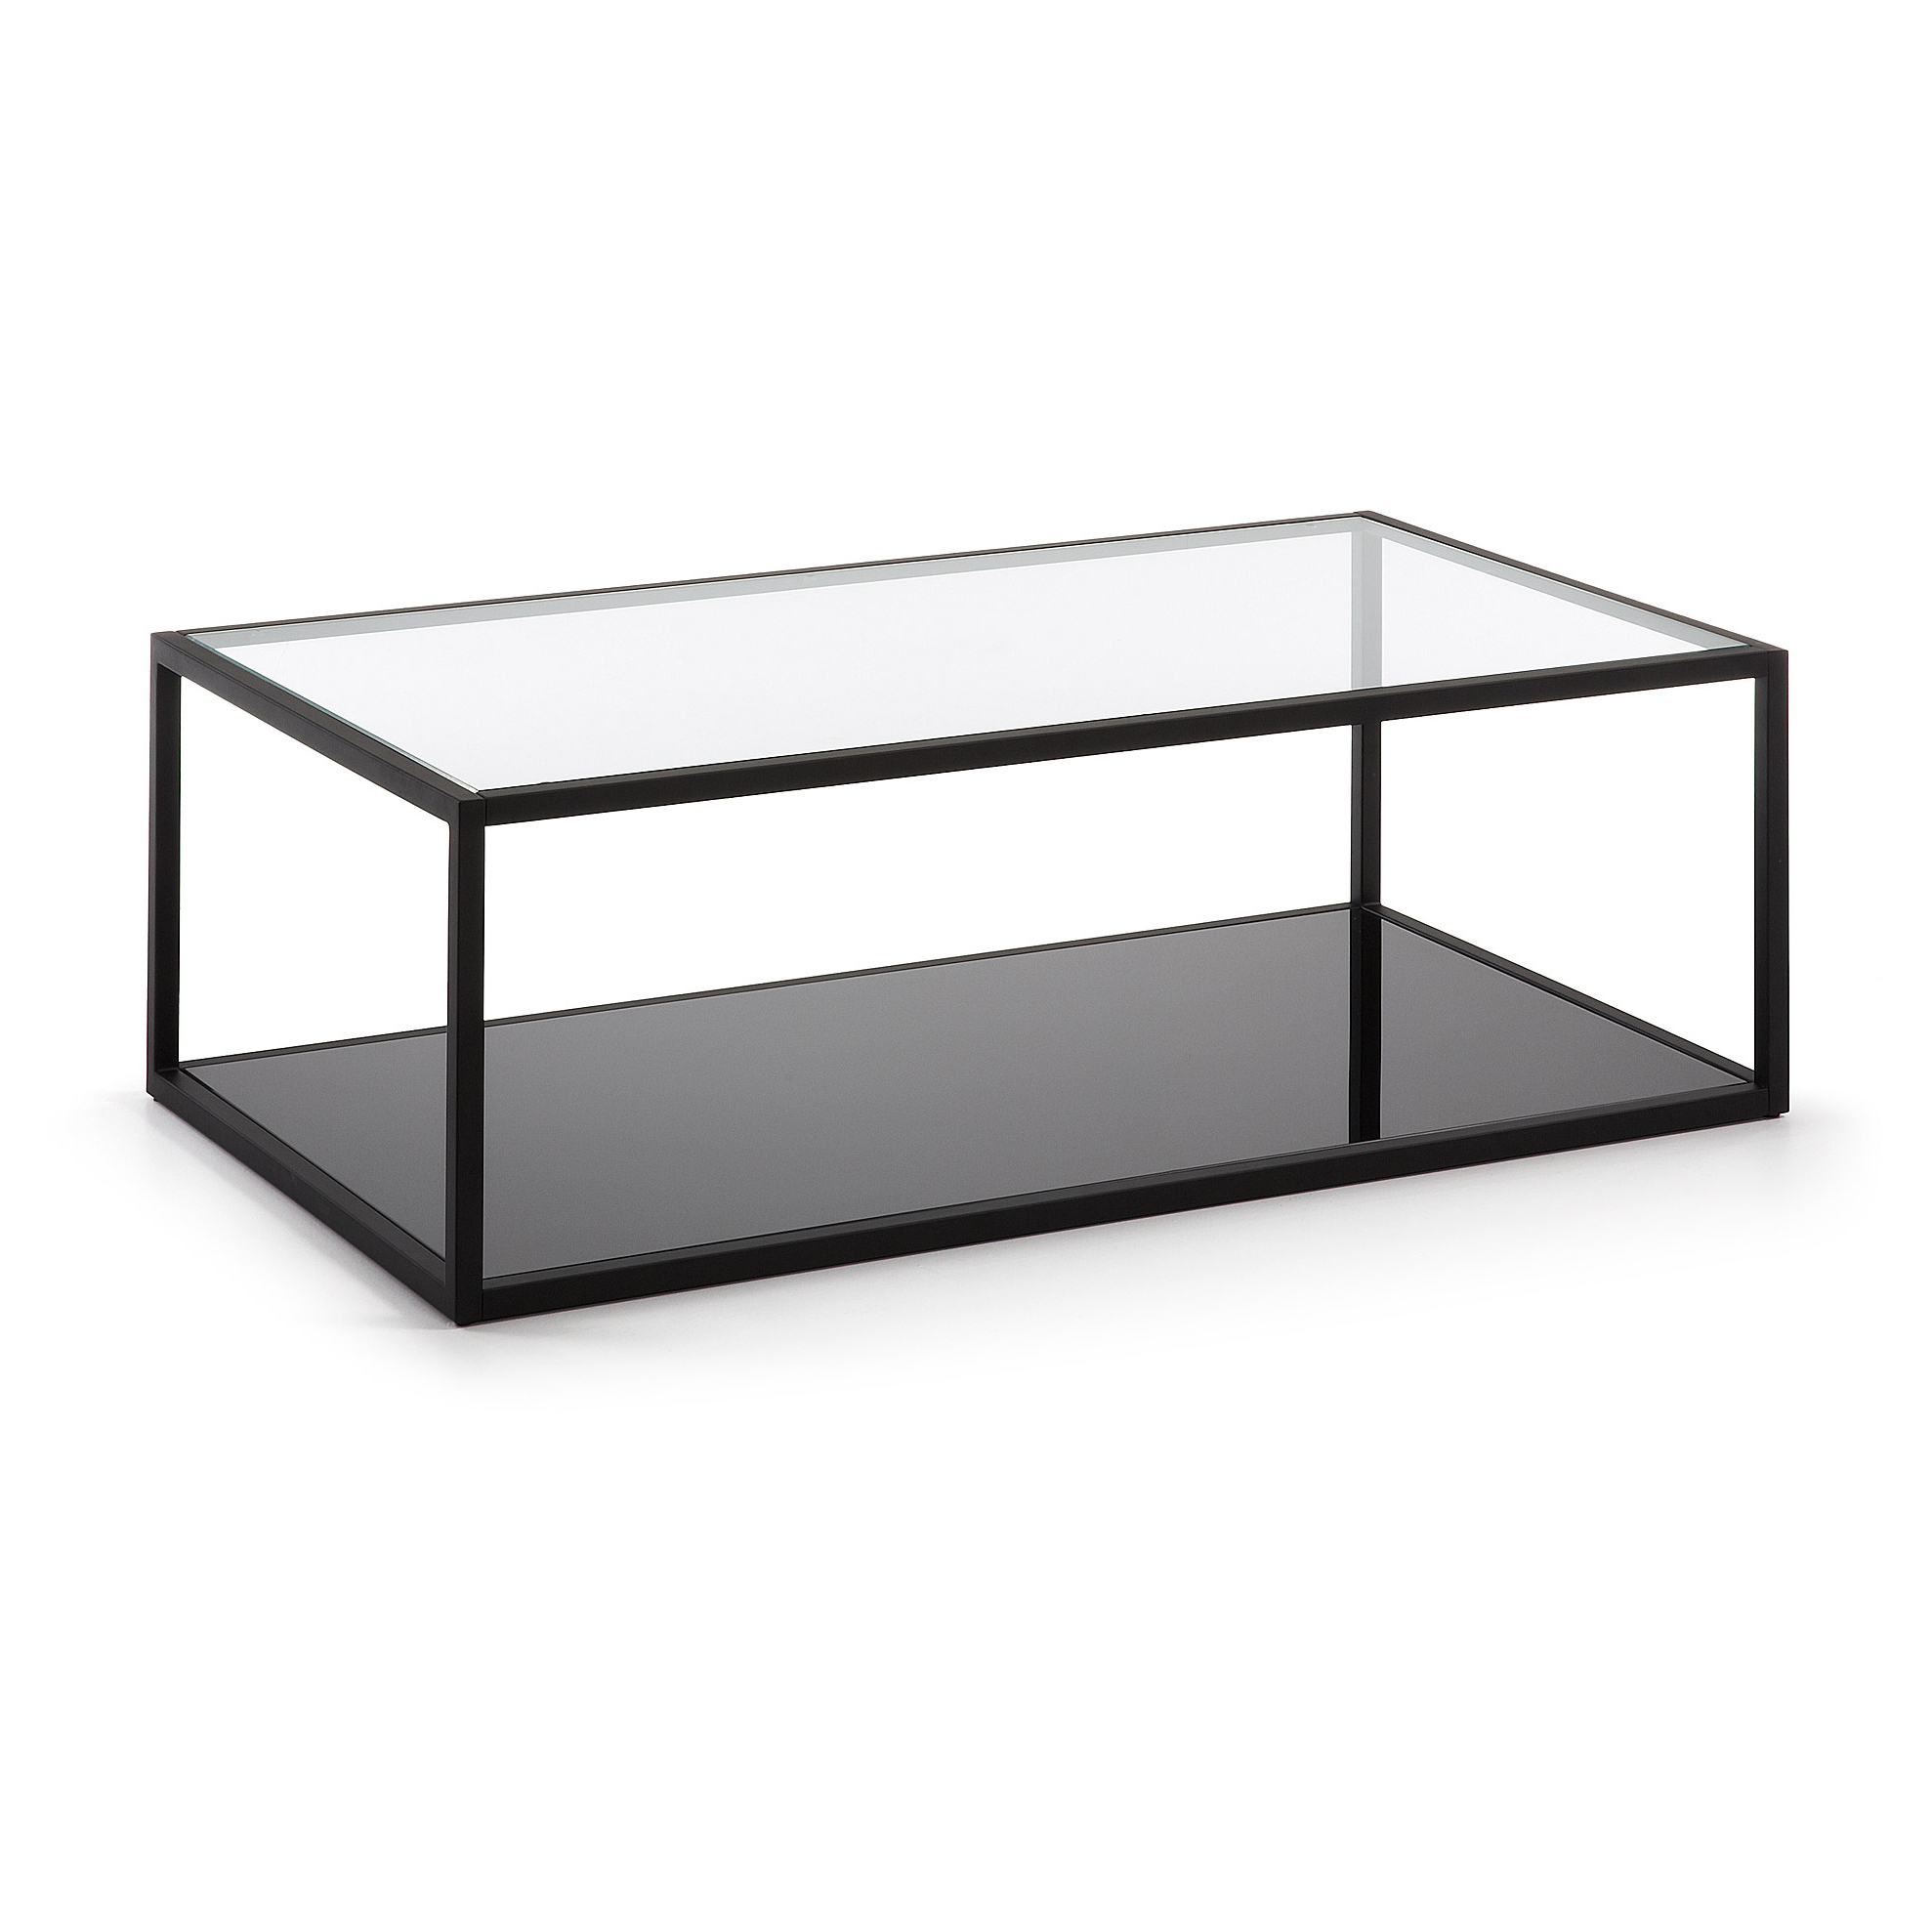 Kave Home Salontafel 'Blackhill' 110 x 60cm